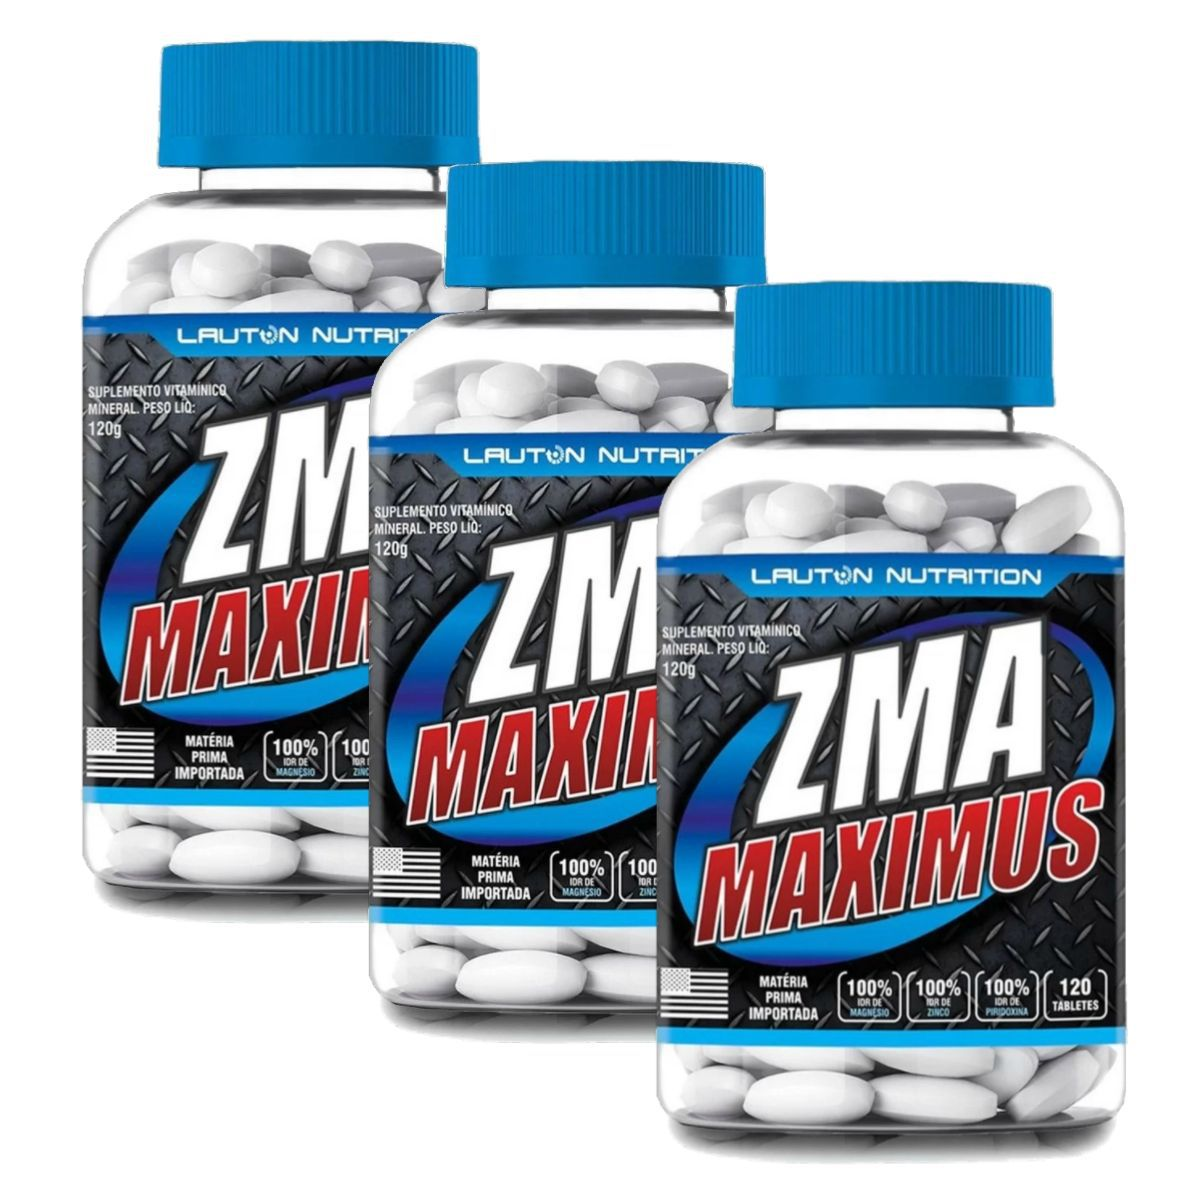 Kit 3 ZMA Maximus Lauton Nutrition - 120 Tablets 1G